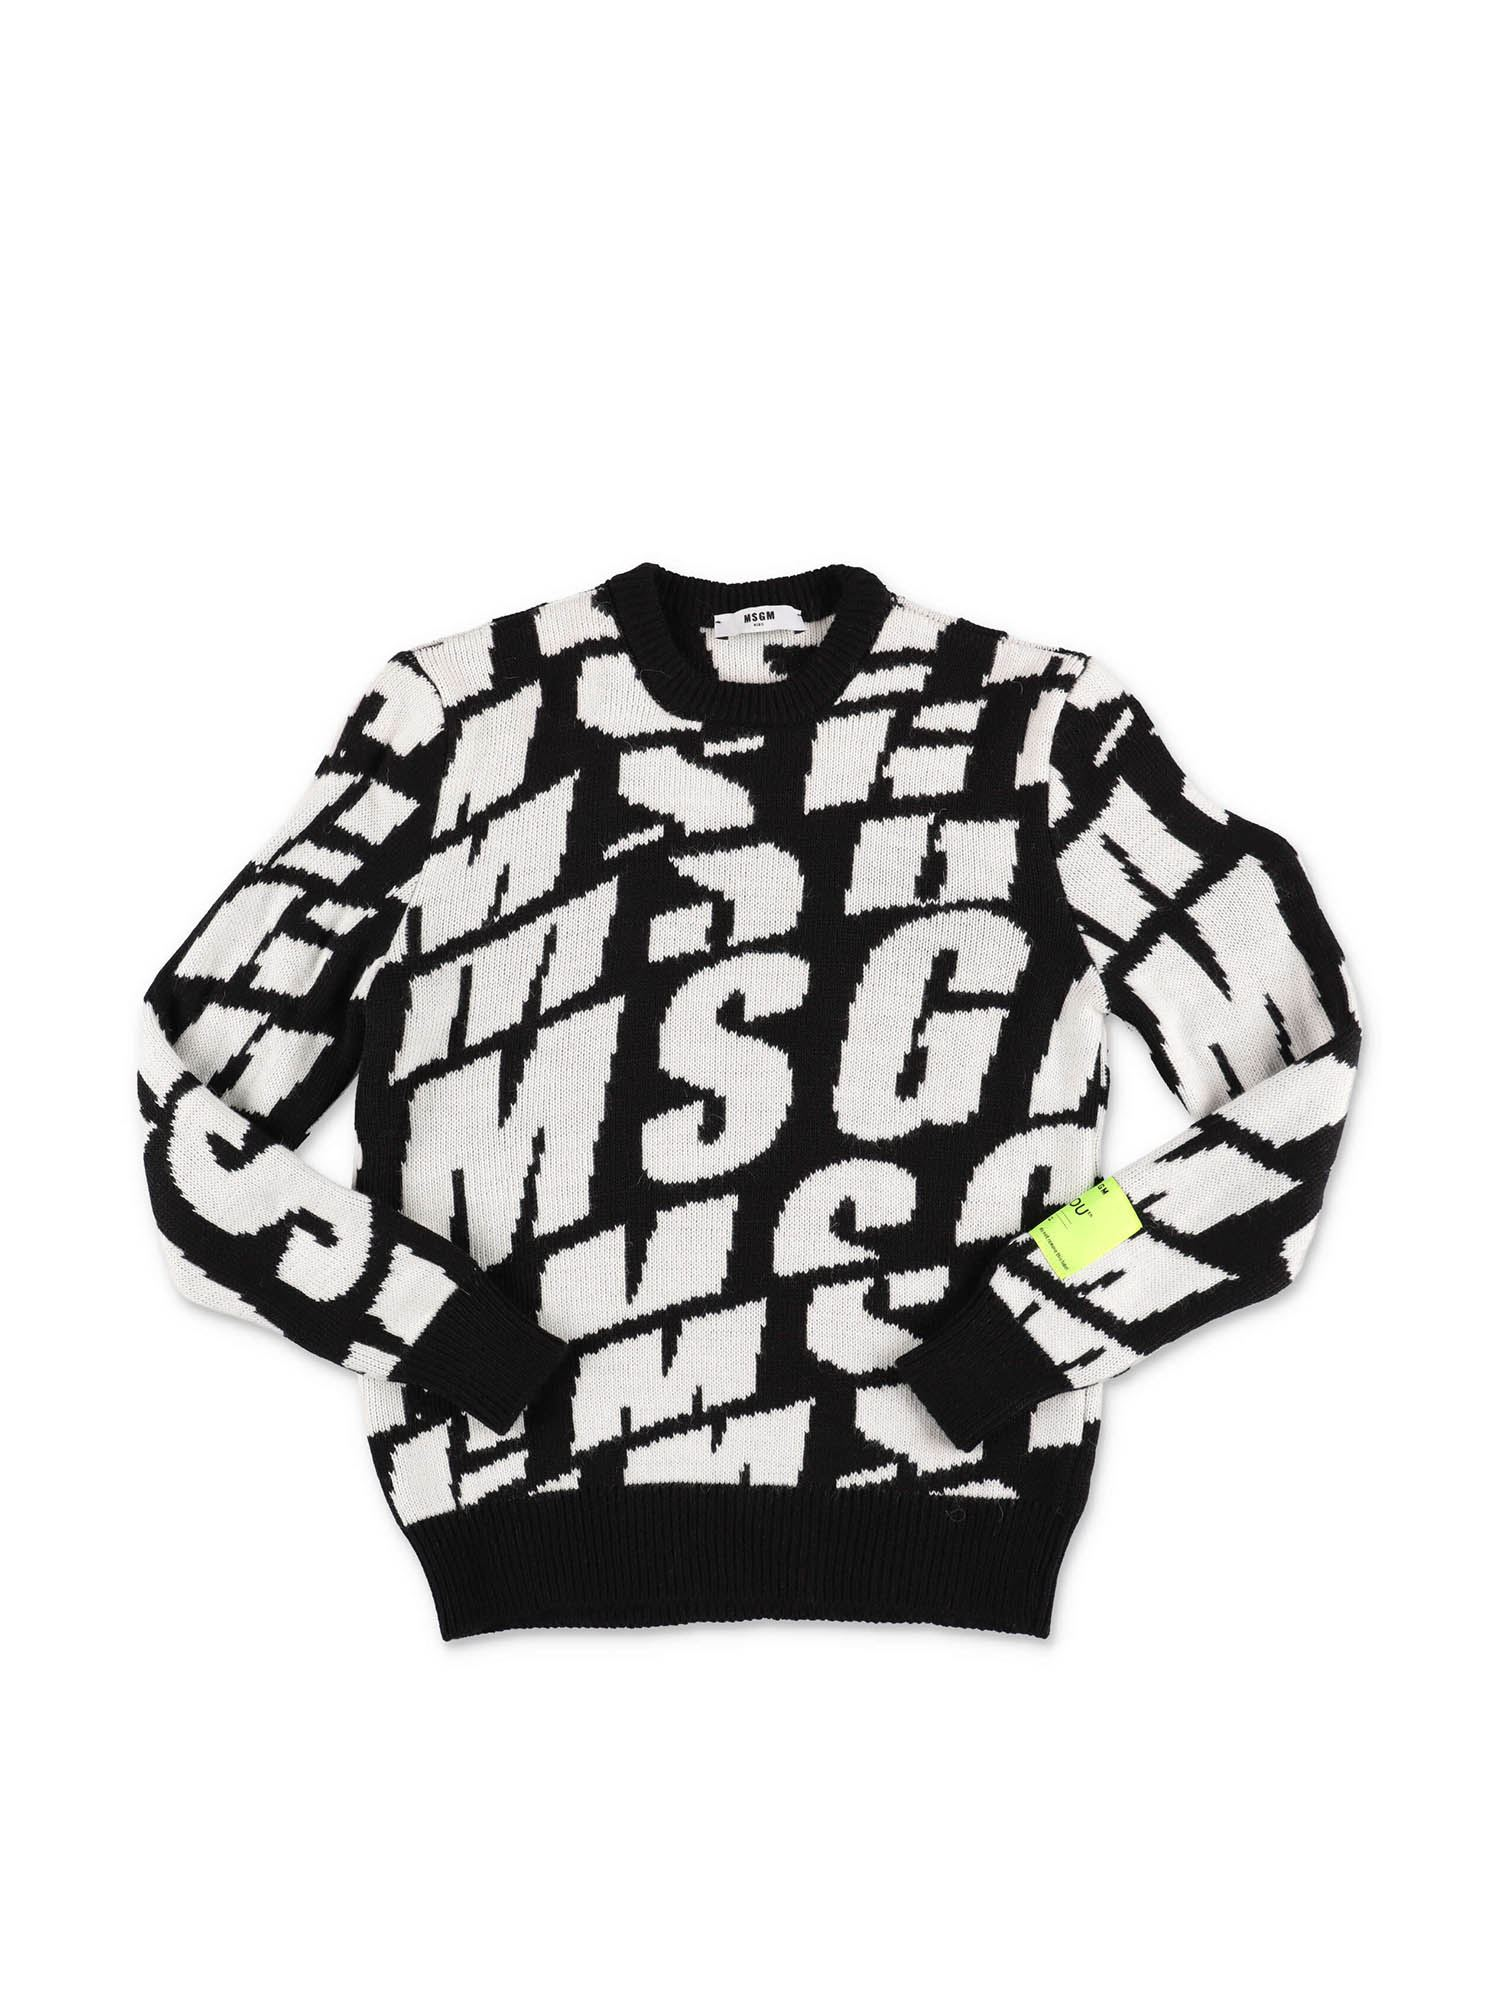 Msgm BLACK SWEATSHIRT WITH LOGO